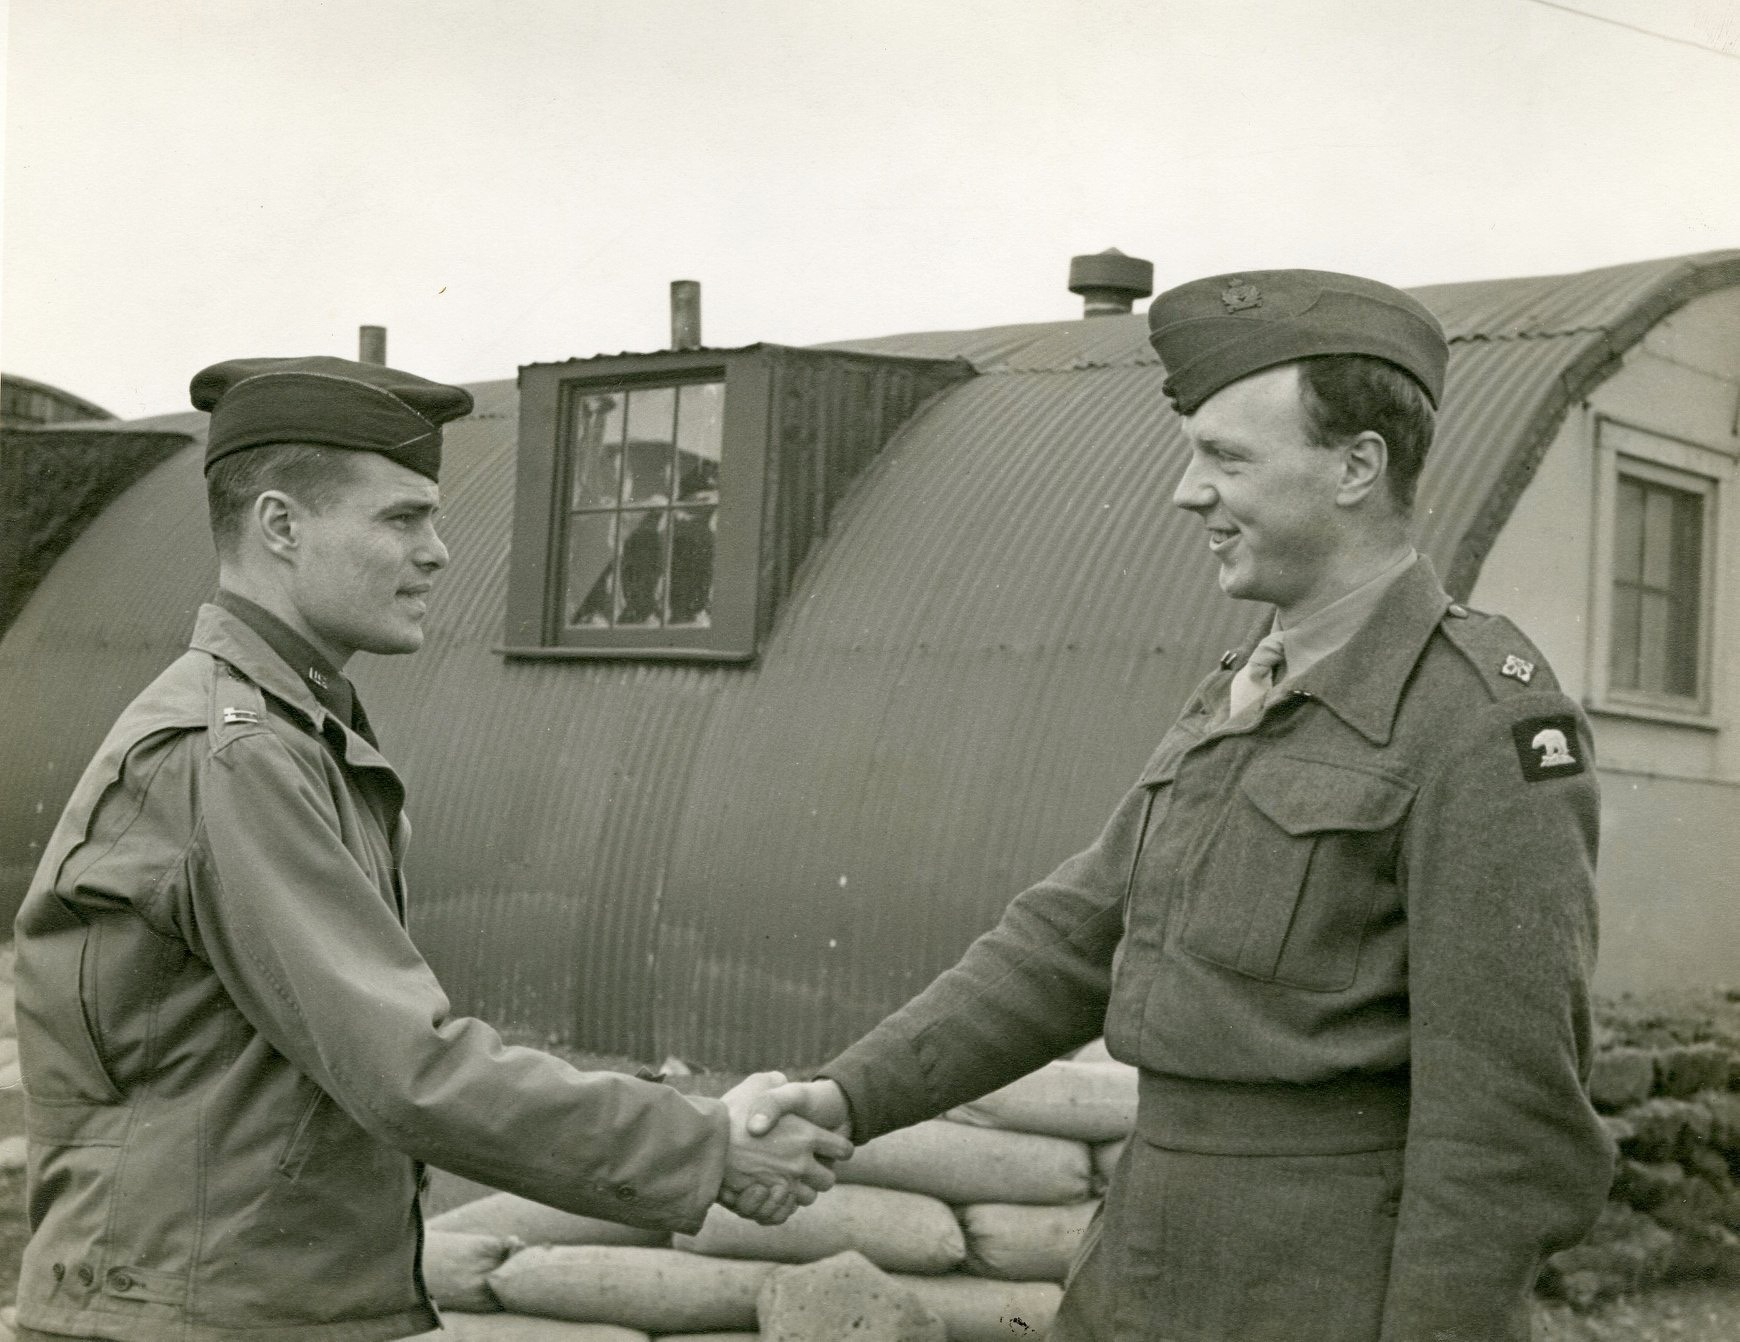 Ralph handshake with another soldier